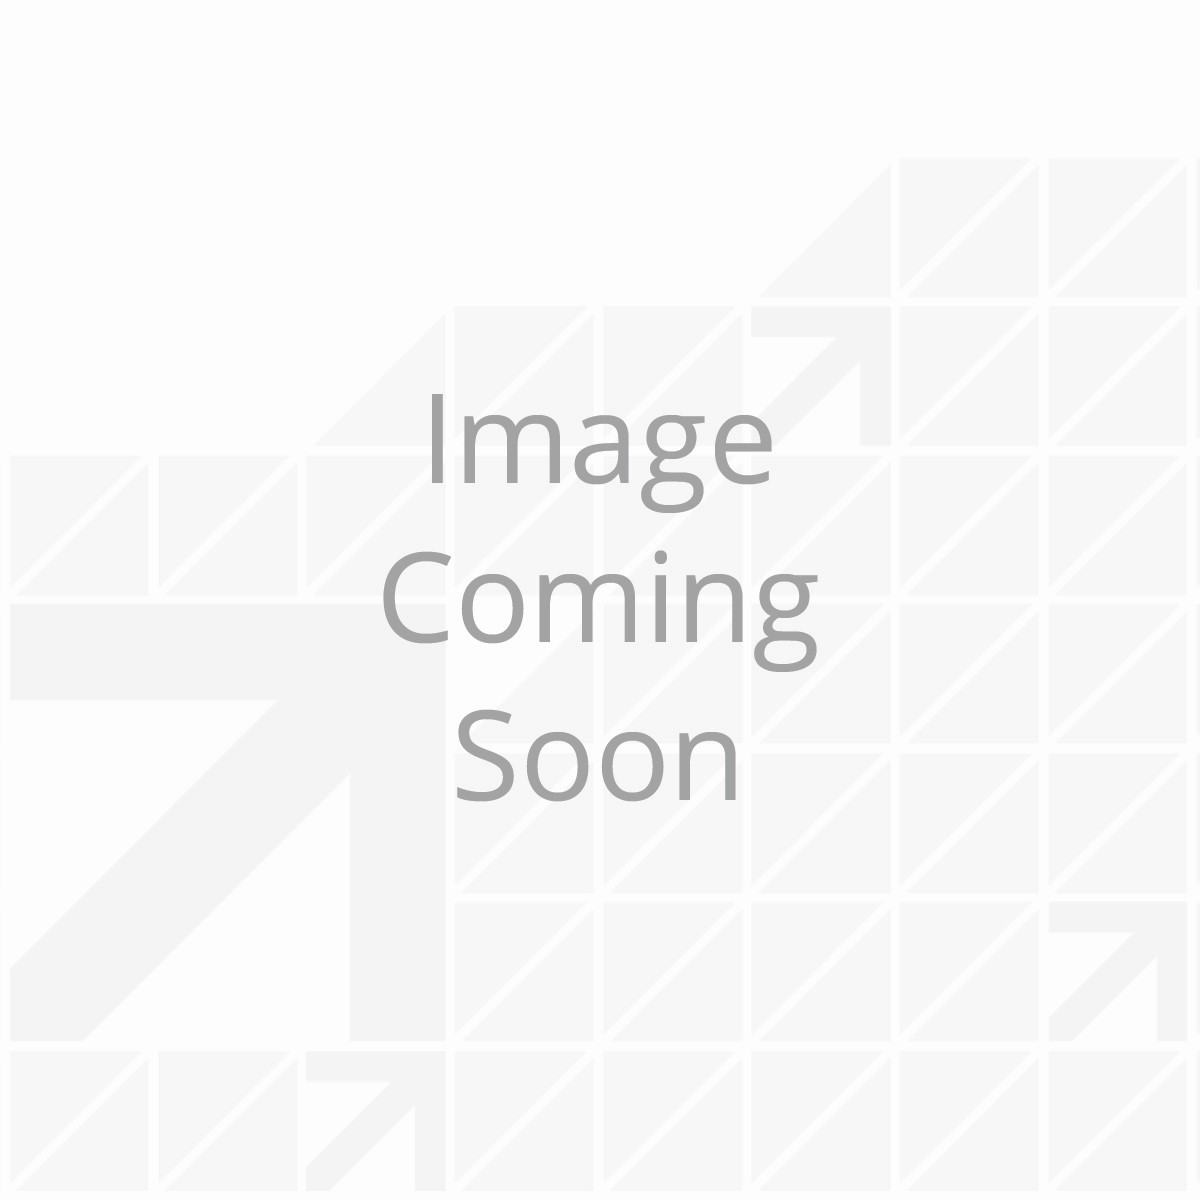 30A 125/250V Transfer Switch